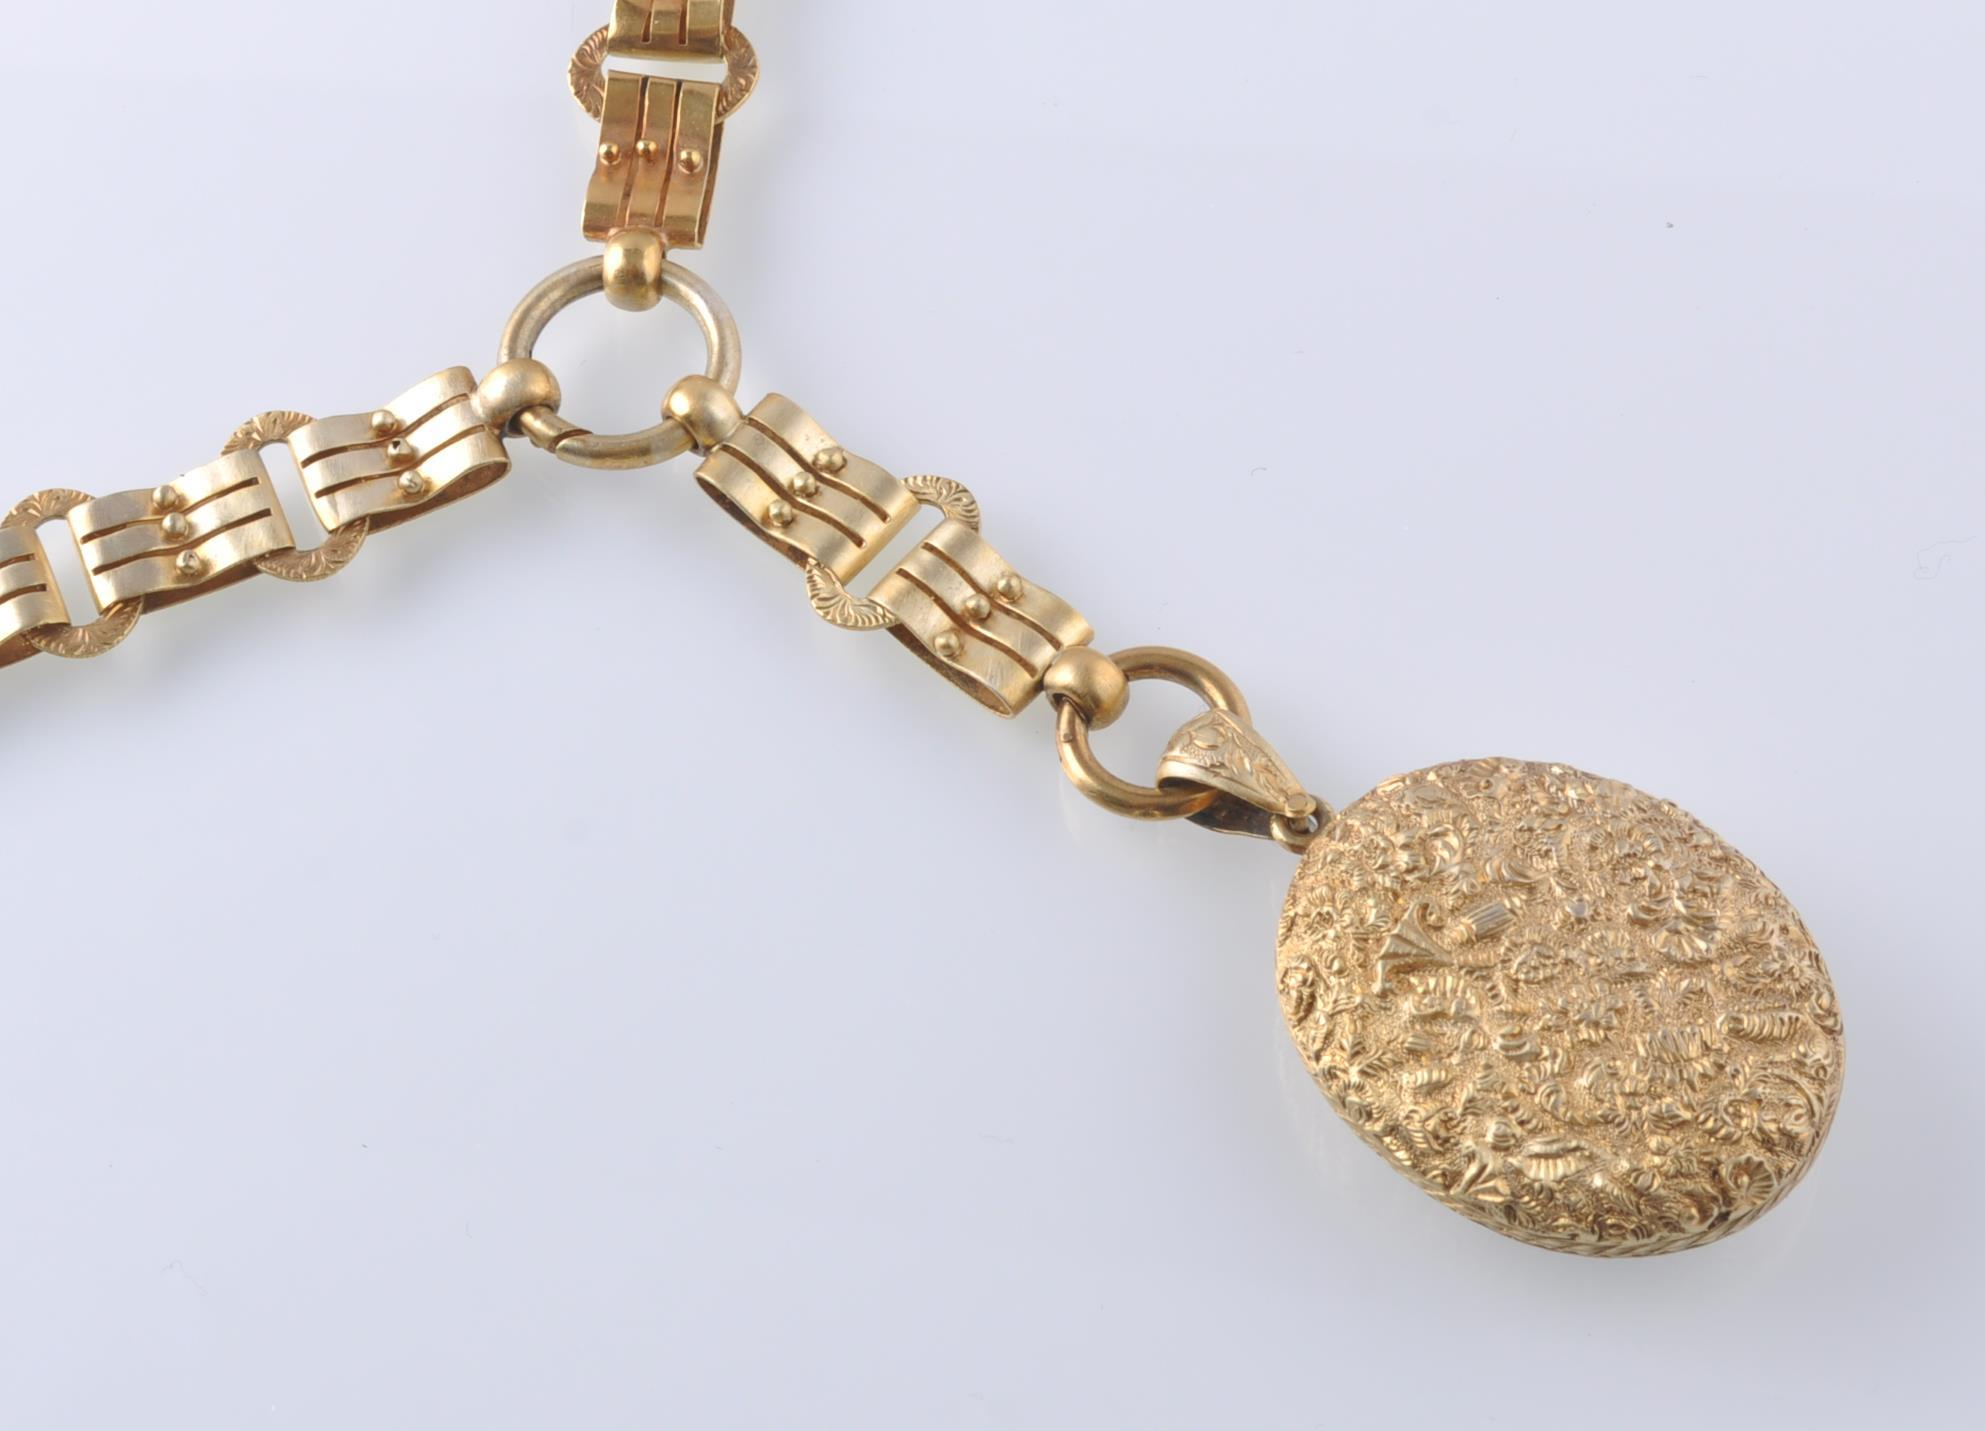 A 19TH CENTURY VICTORIAN PENDANT LOCKET ON CHAIN - Image 7 of 9